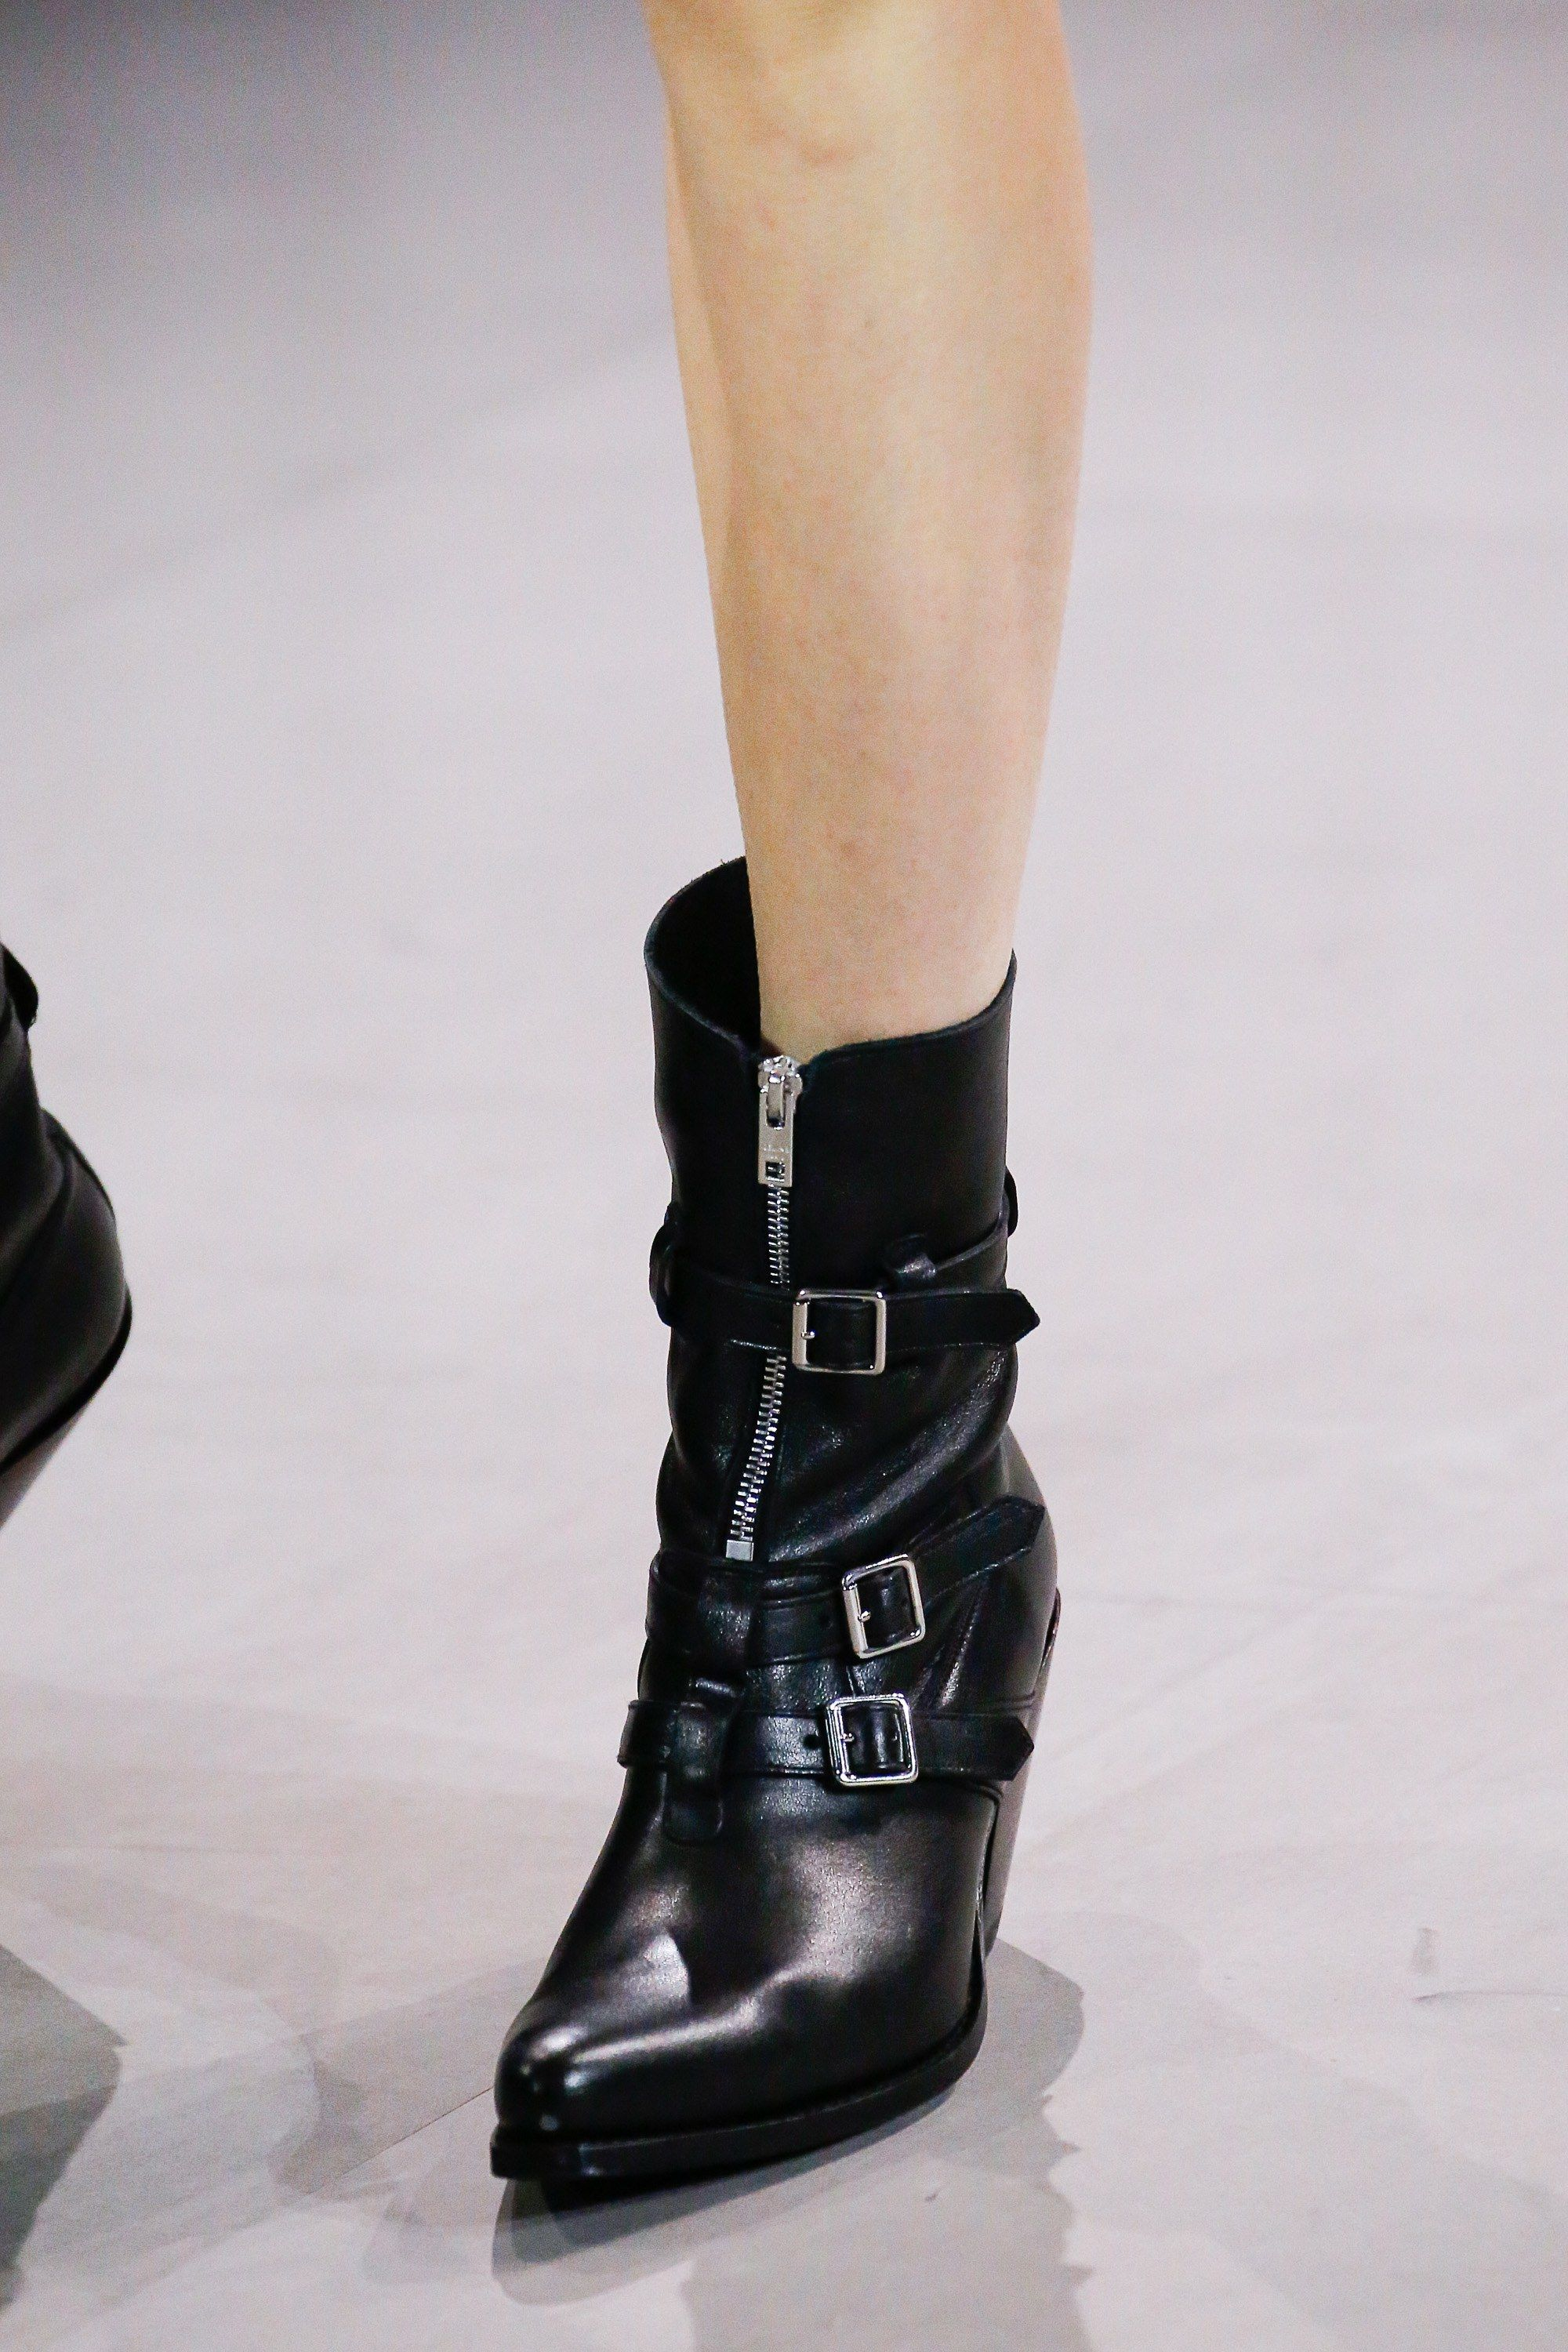 Why And How Have Ugly Boots Become A Thing? | British Vogue